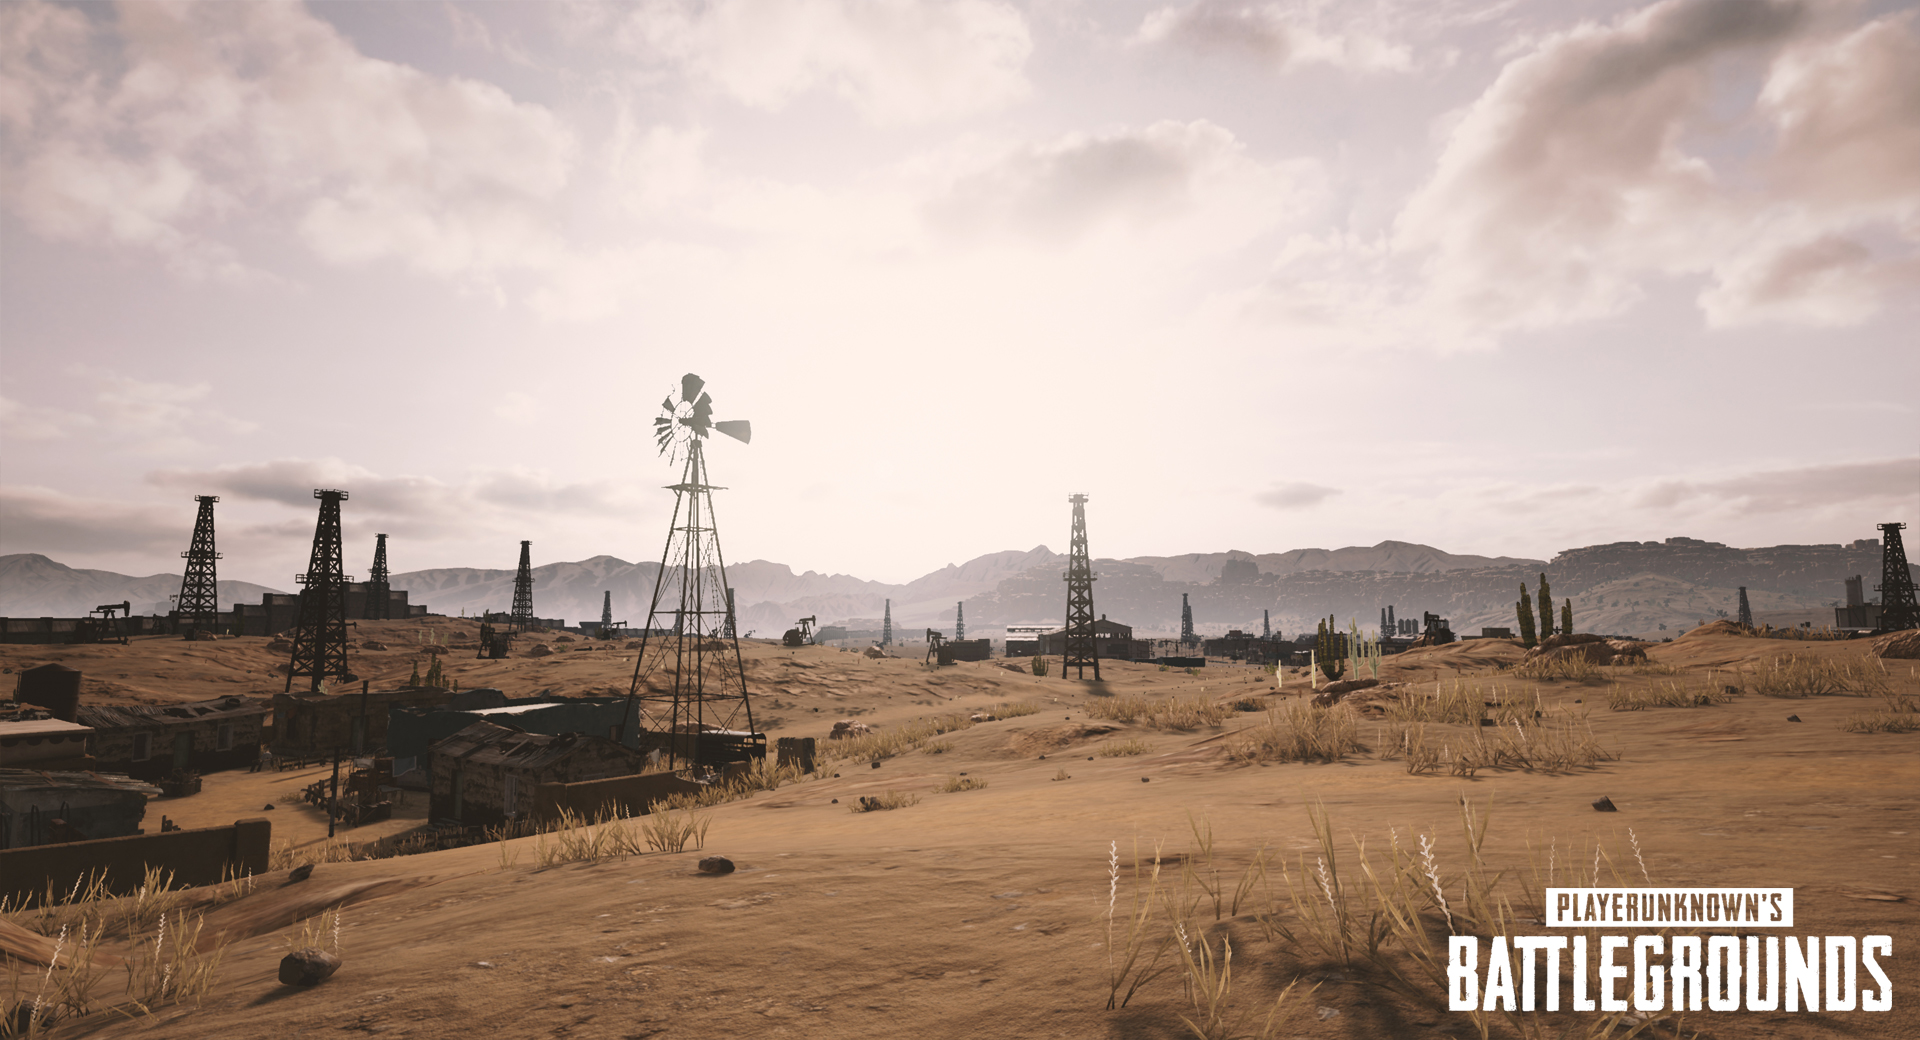 playerunknowns battlegrounds nvidia desert map screenshot 002 - First Five Screenshots Of PUBG's Desert Map